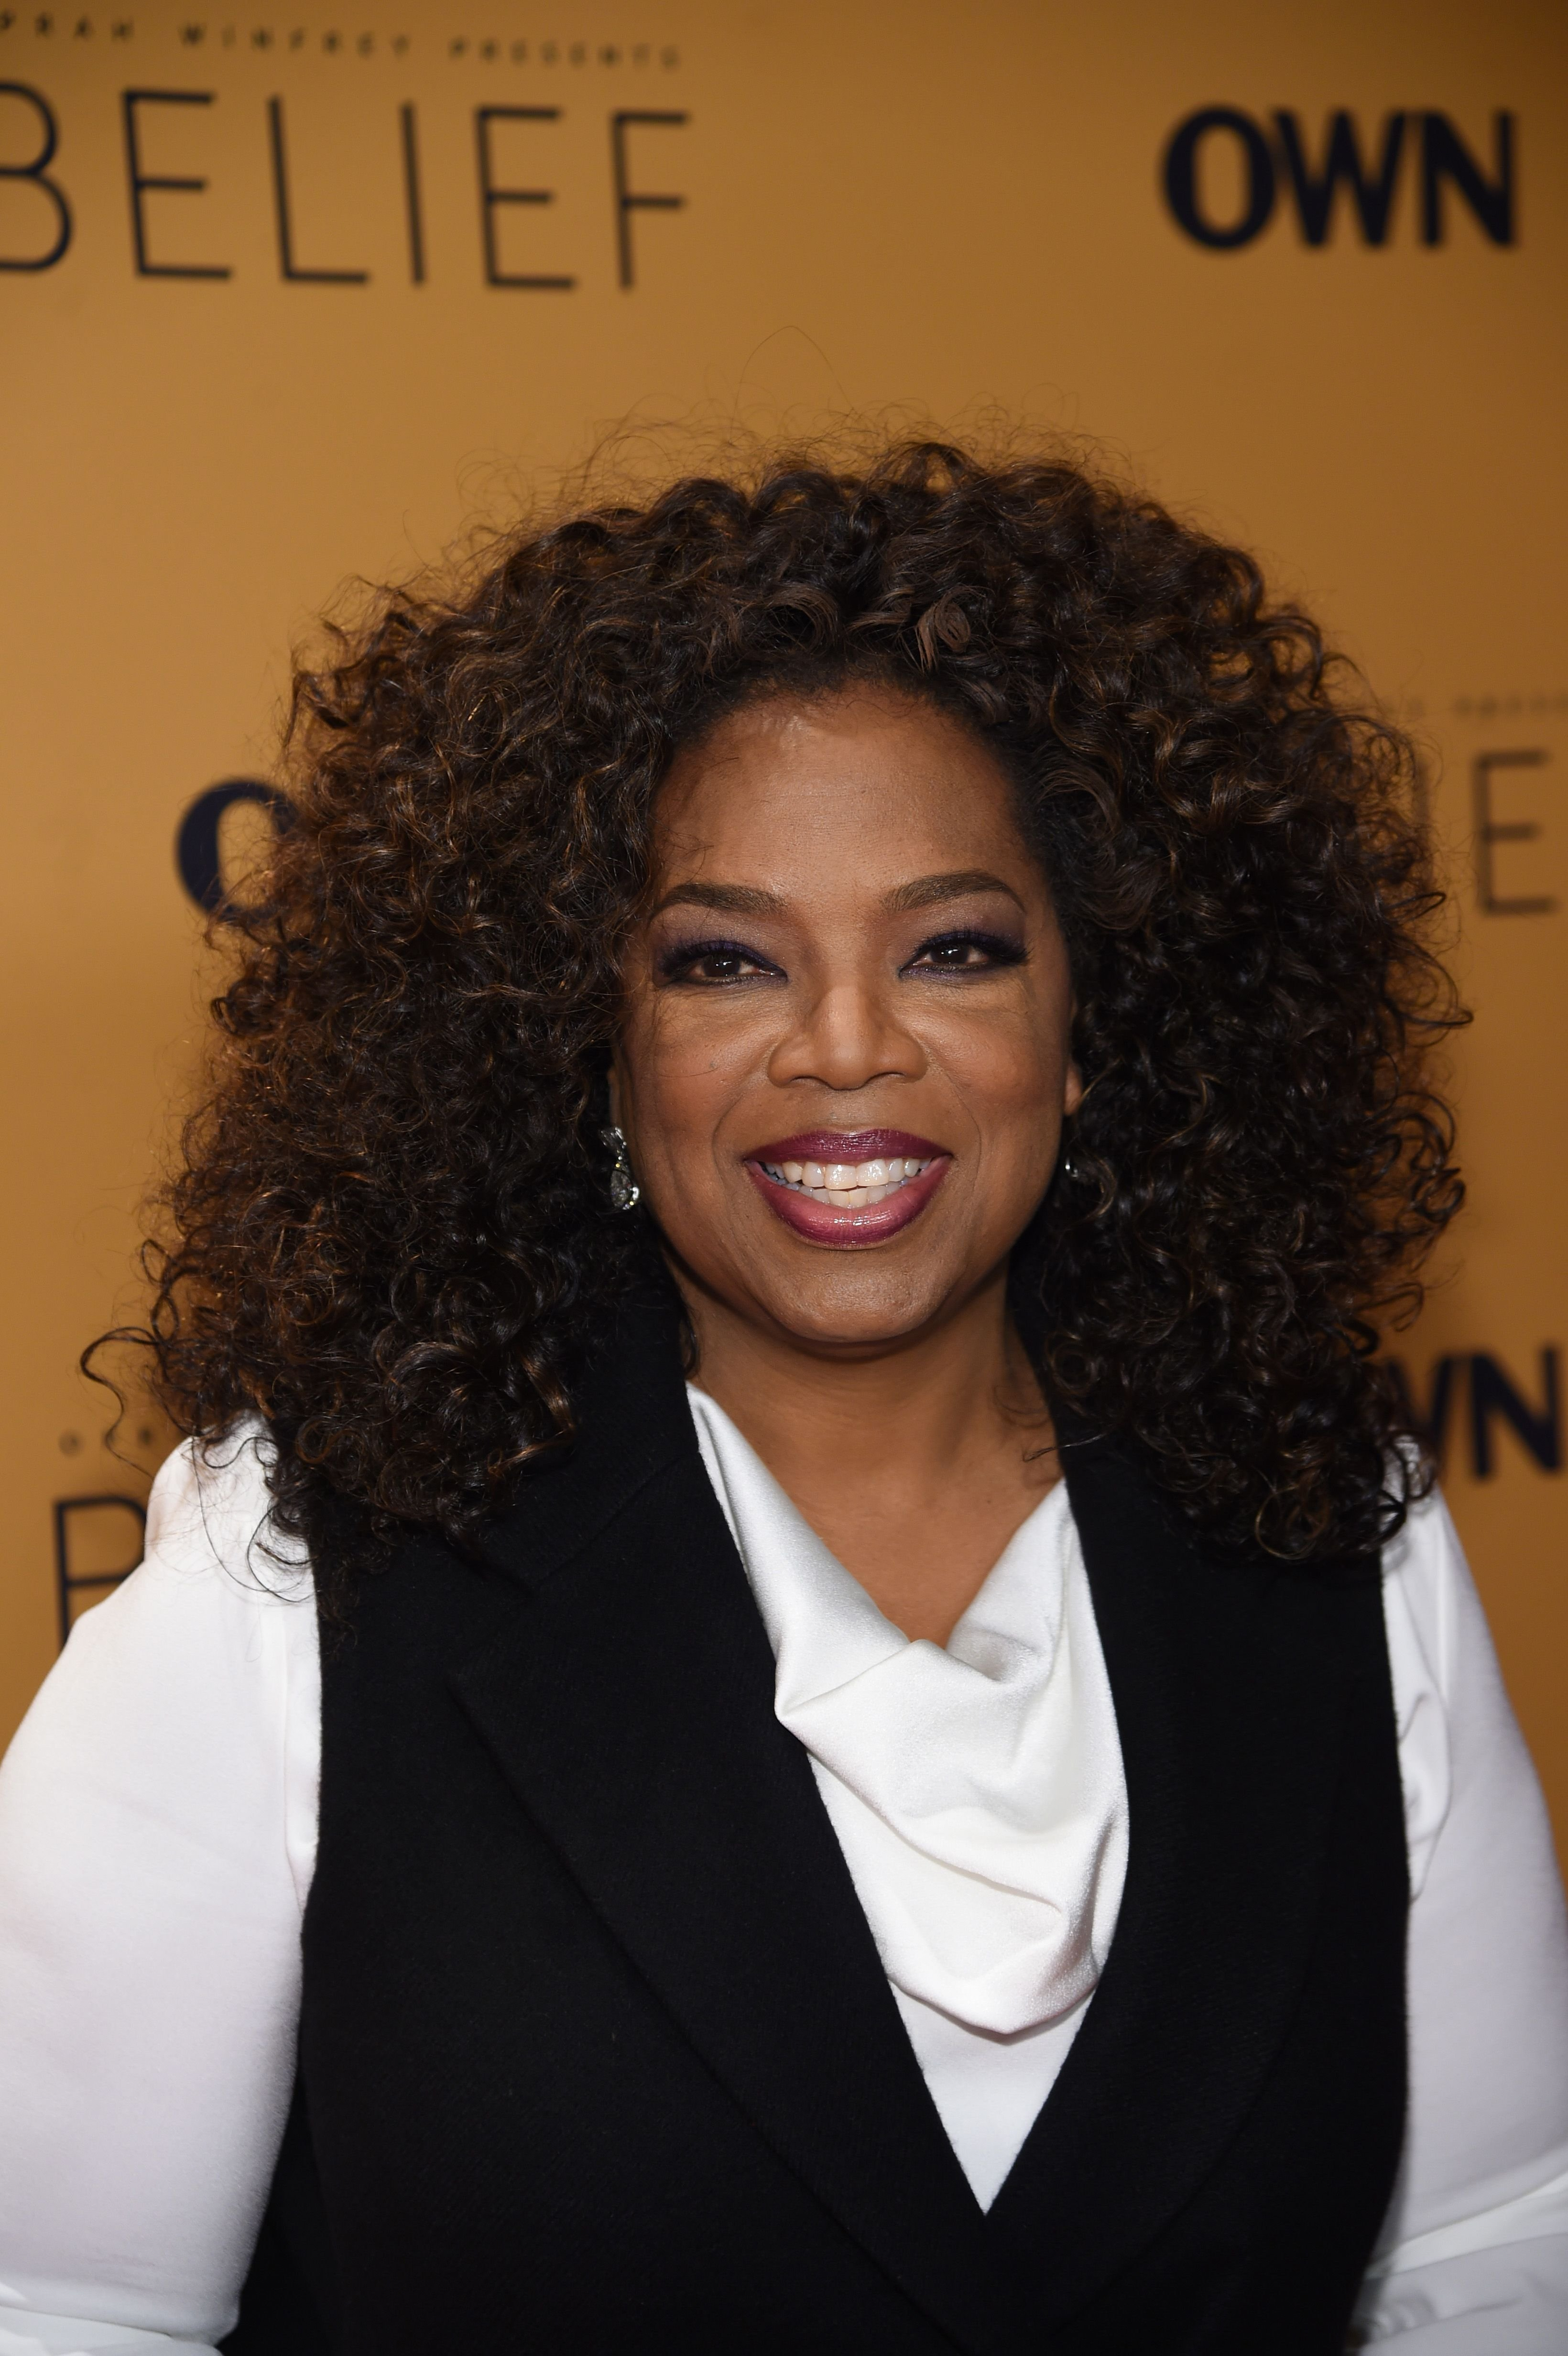 """Oprah Winfrey attends the """"Belief"""" New York premiere at TheTimesCenter 